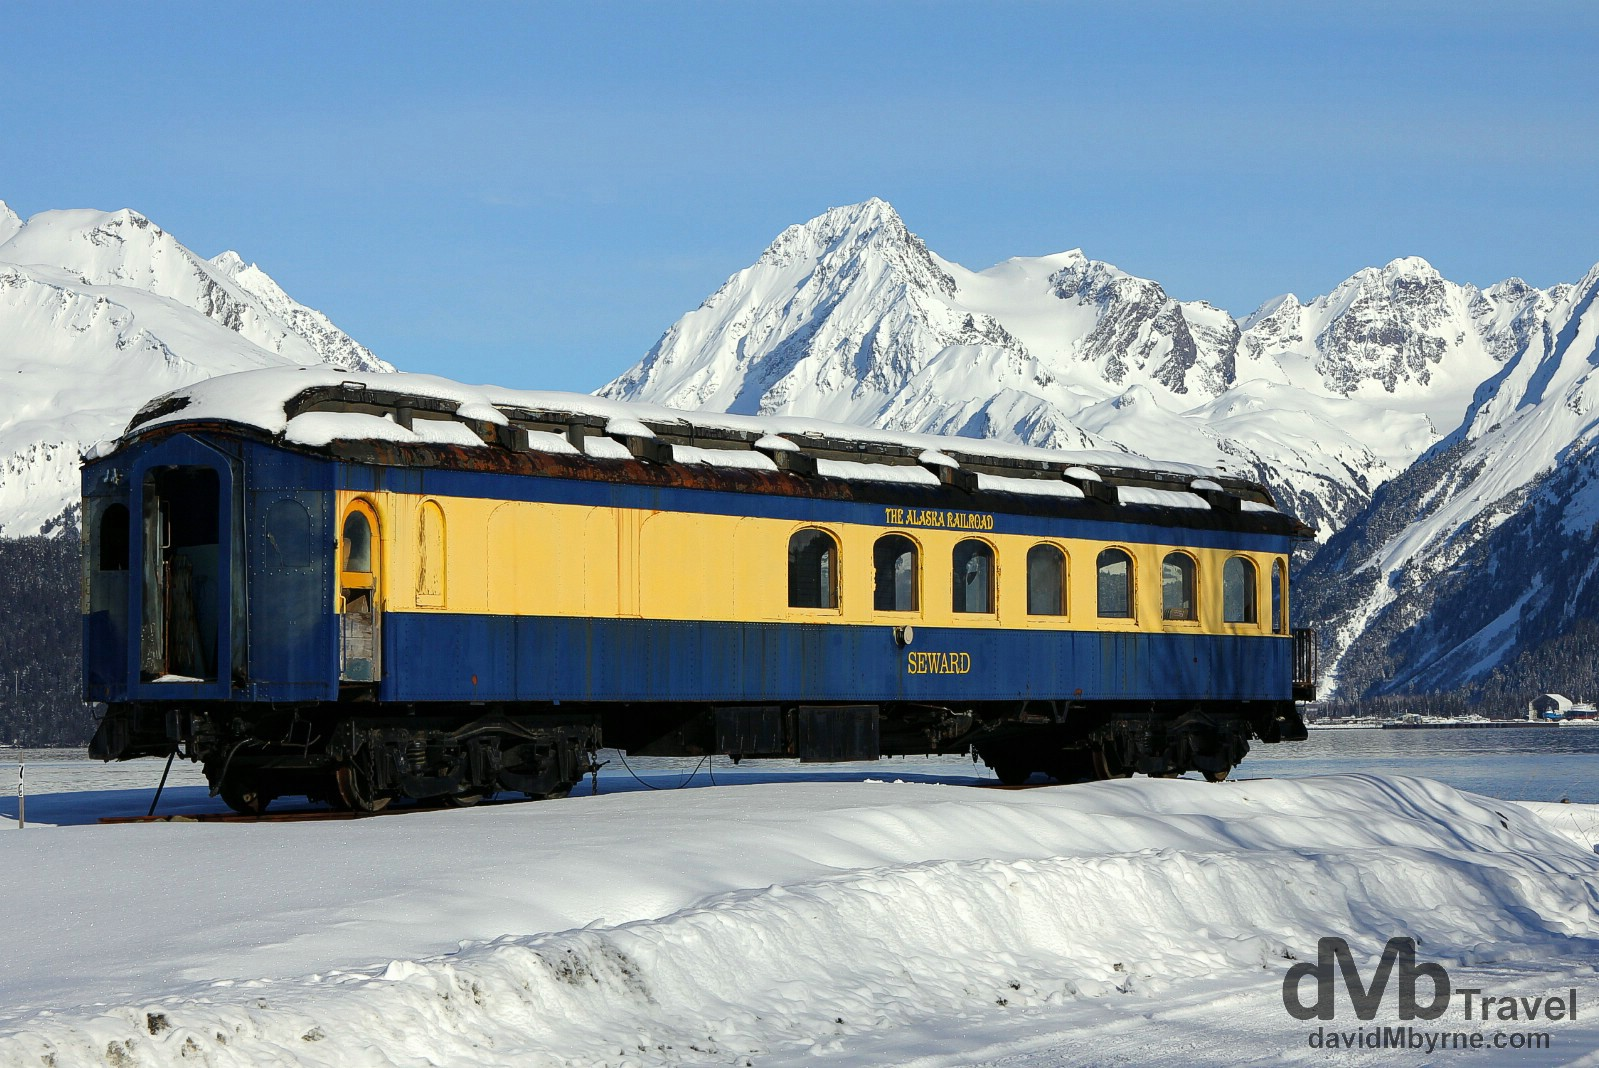 A disused Alaska Railroad carriage at Lowell Point on the shores of Resurrection Bay, Kenai Peninsula, Alaska, USA. March 15th 2013.